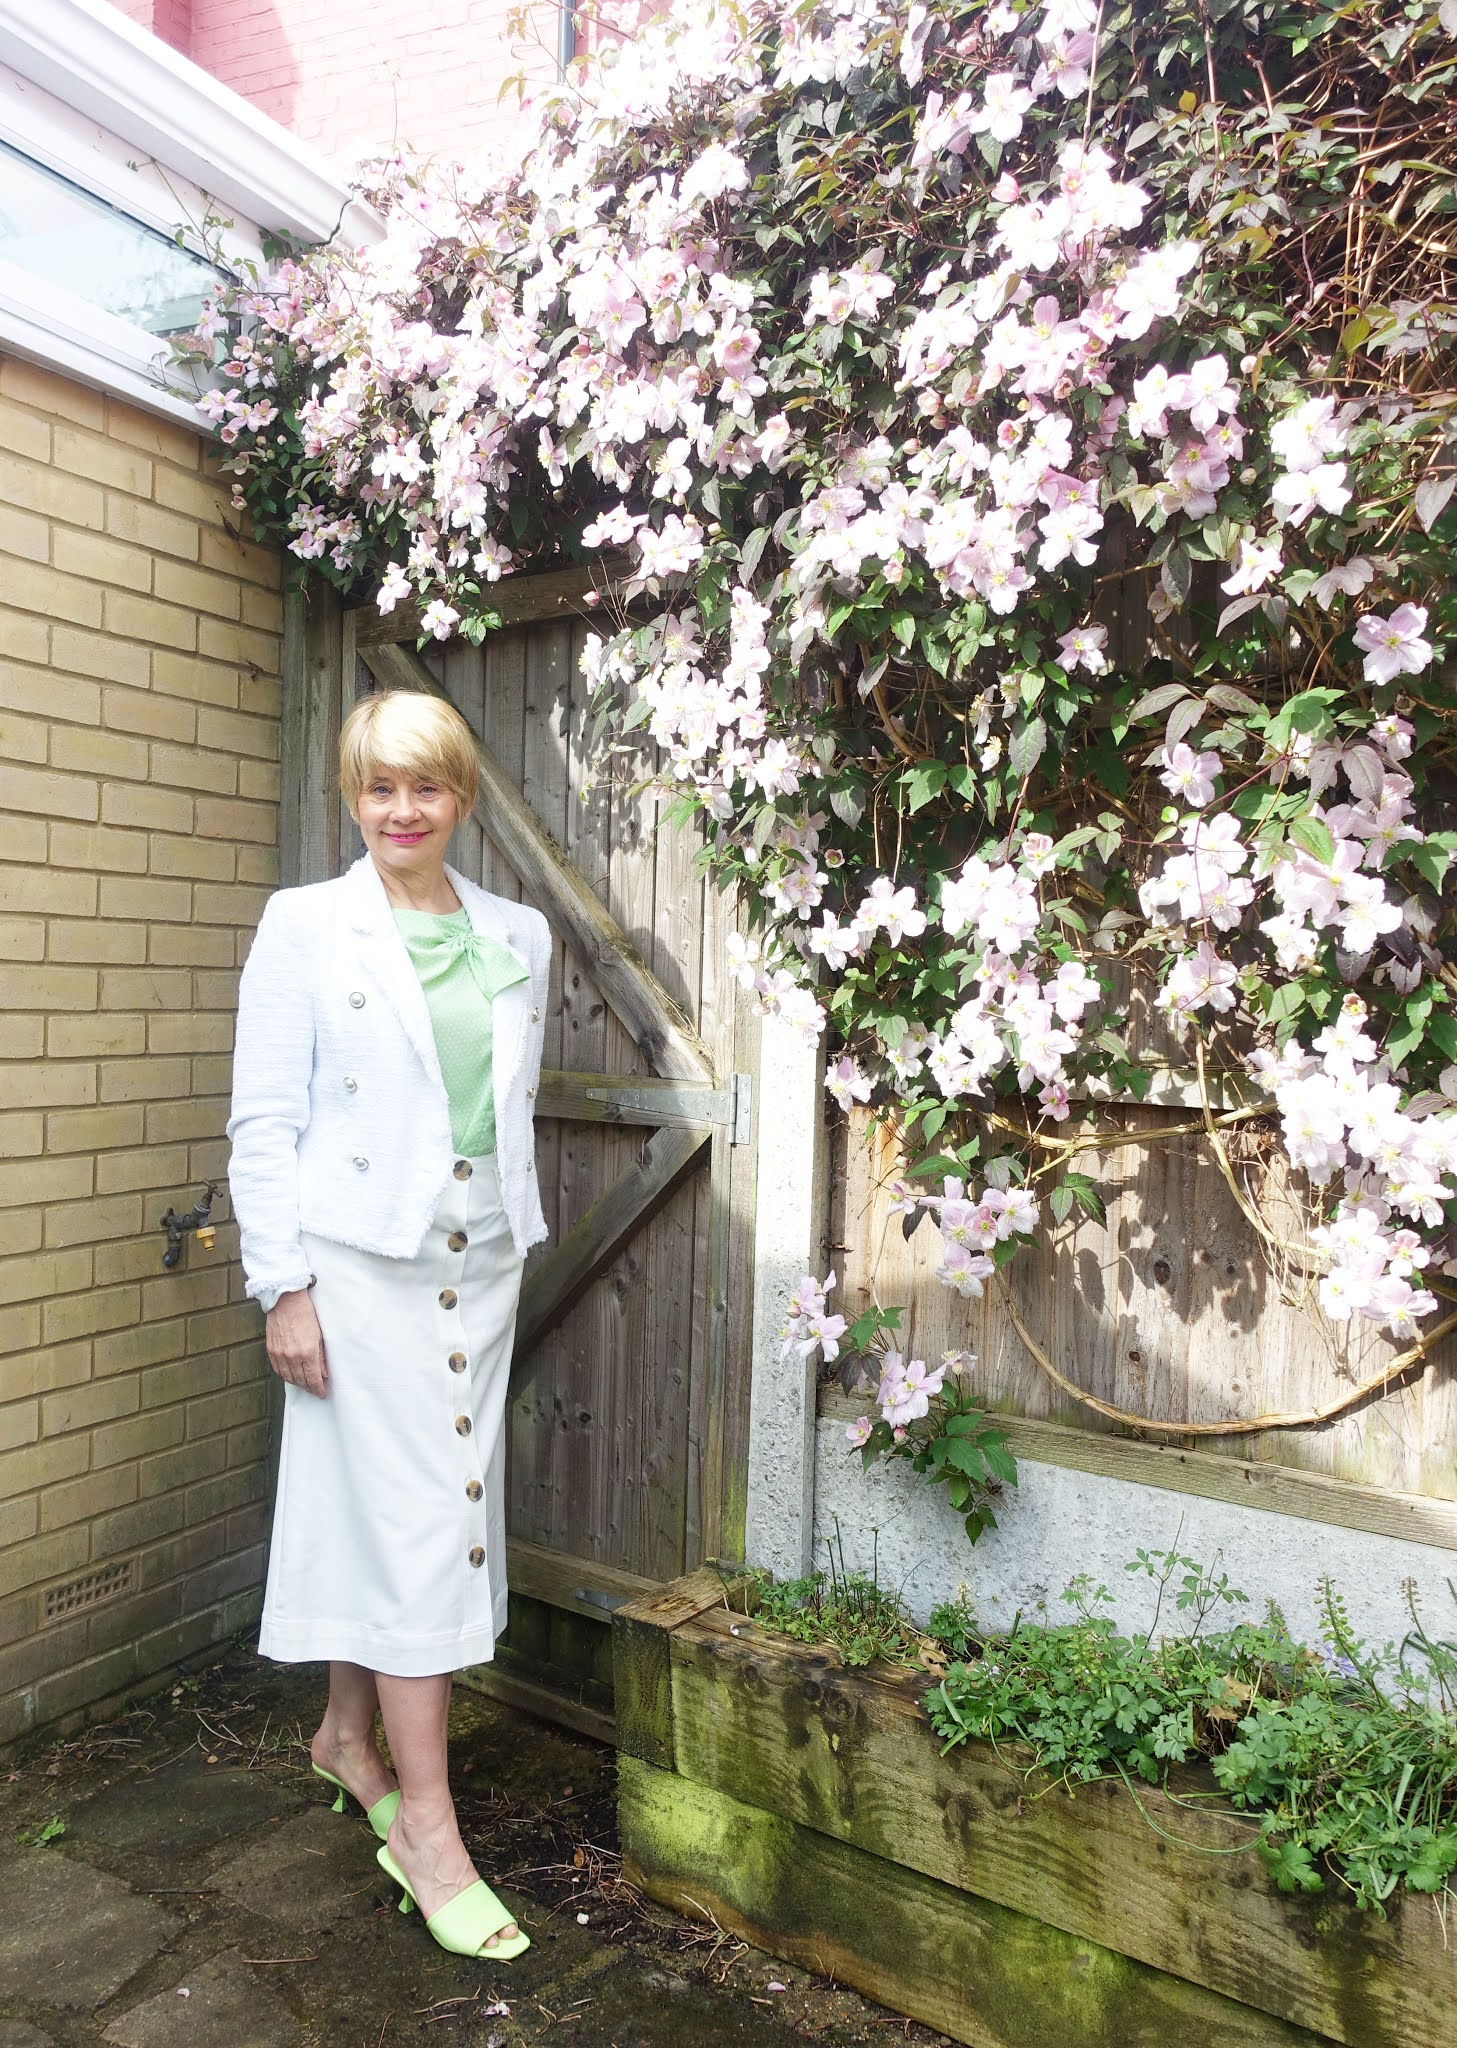 An all white outfit with green bow top and mules for over 50s blogger Gail Hanlon as she poses in the garden next to a pink clematis montana